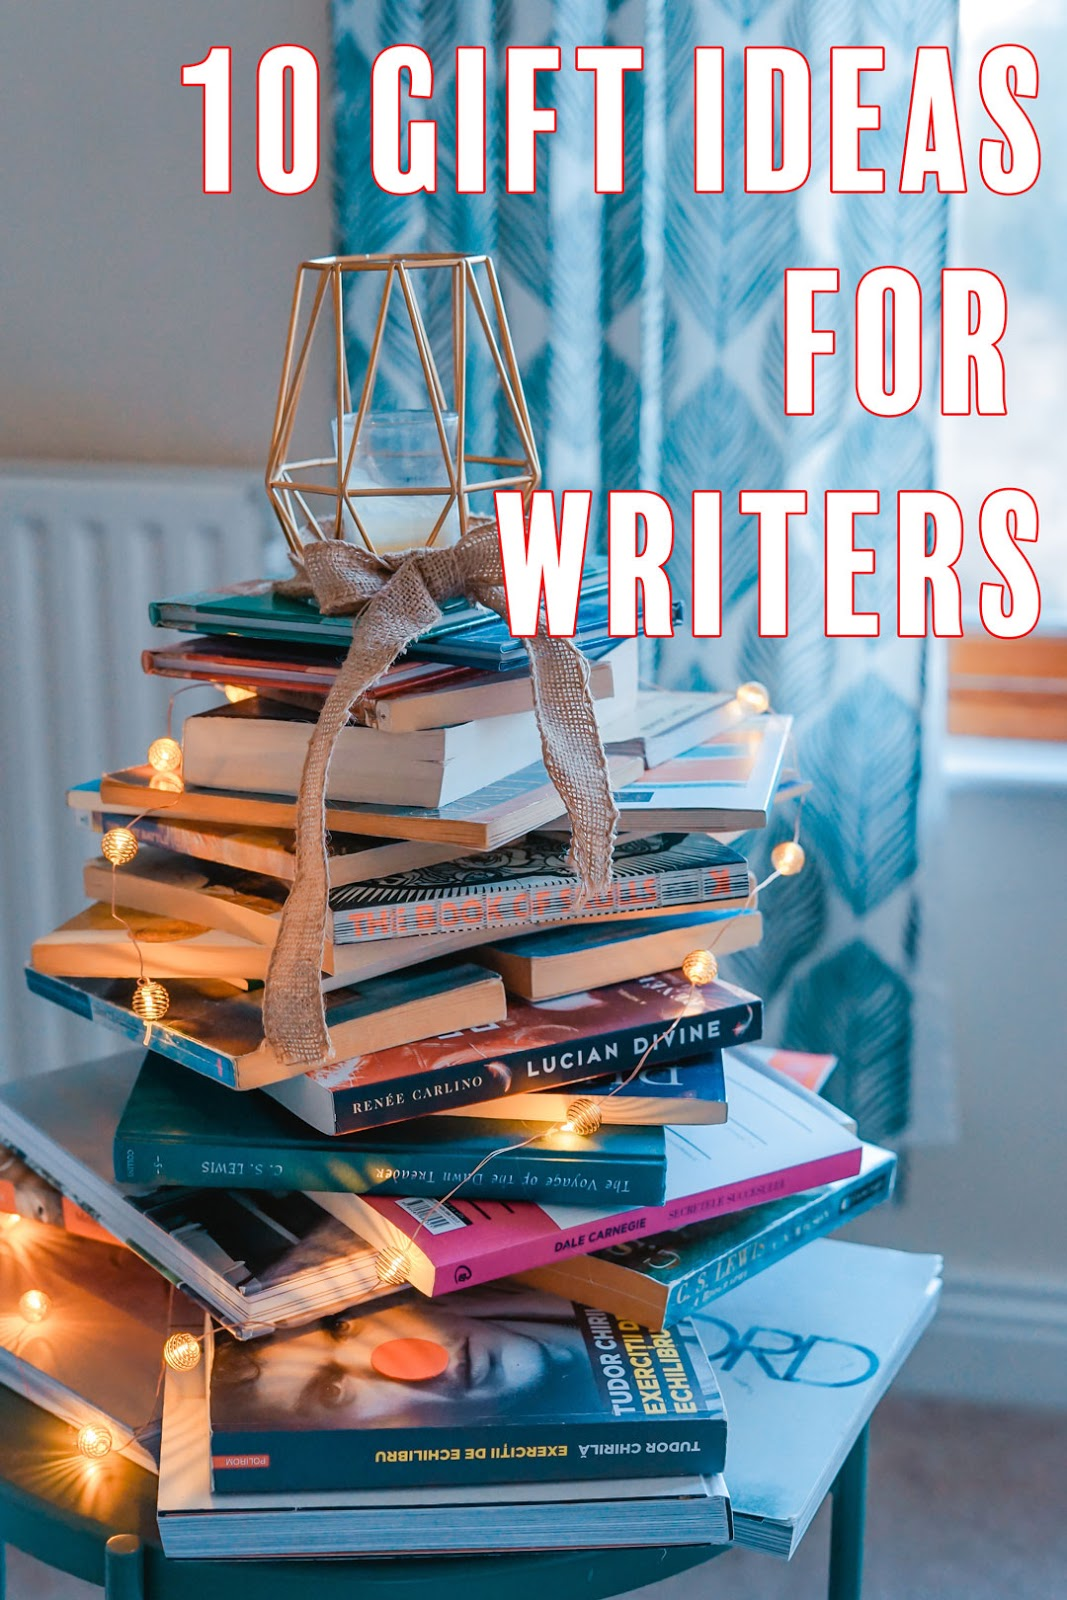 4 Year Boy Bedroom Decorating Ideas: 10 Gift Ideas For Nerdy Writers